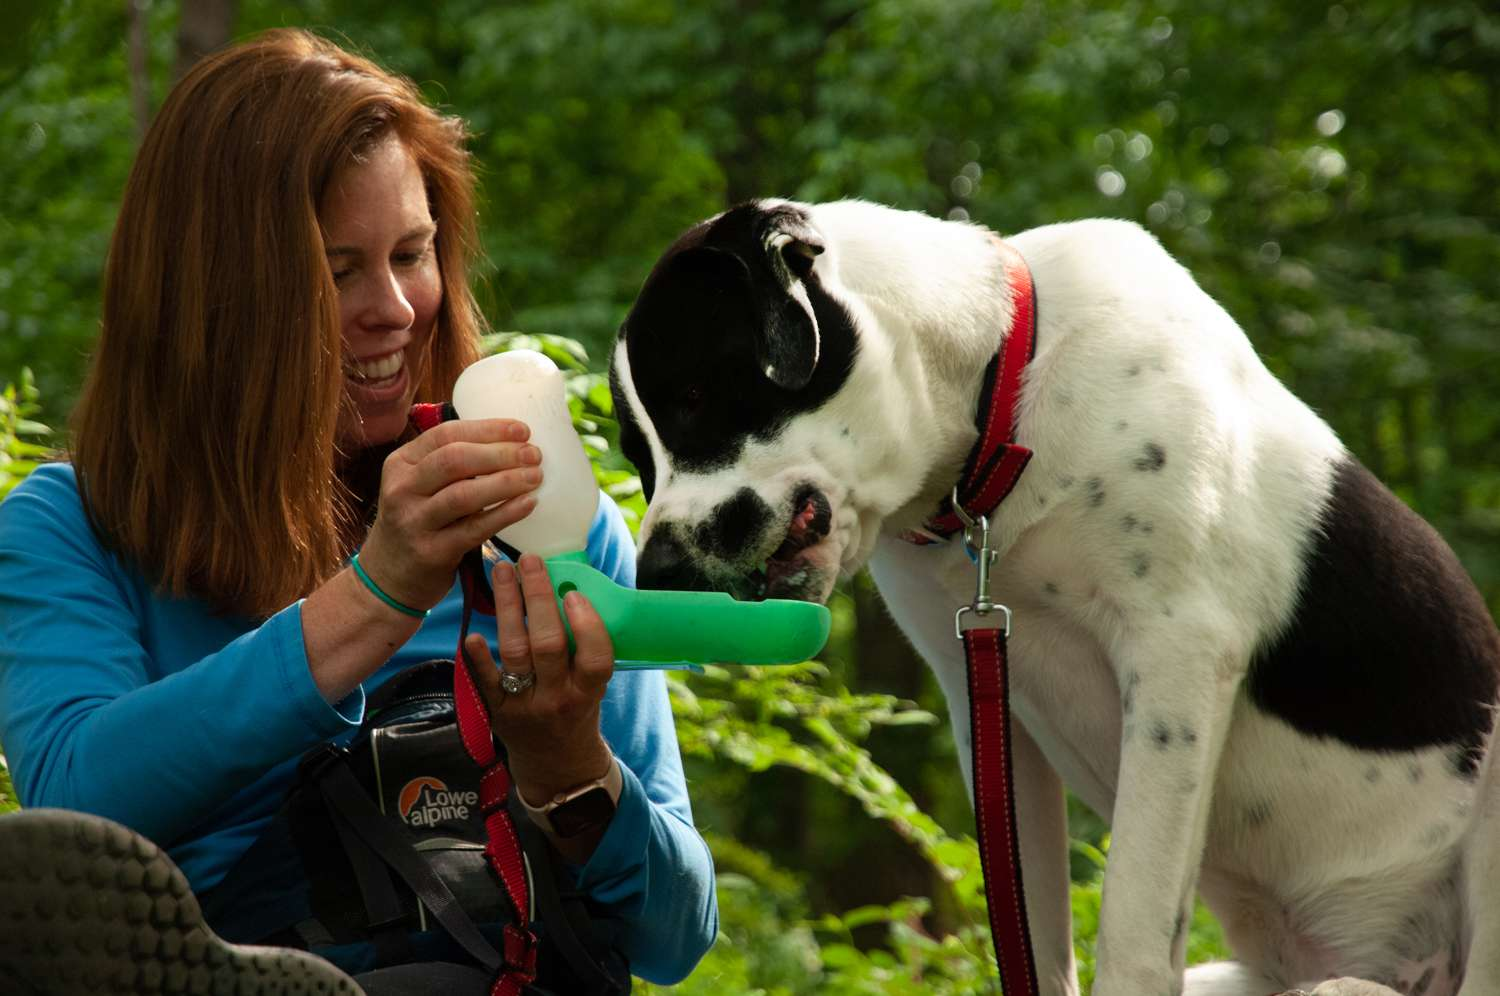 red-headed woman smiles as dog drinks out of portable water carrier on hike